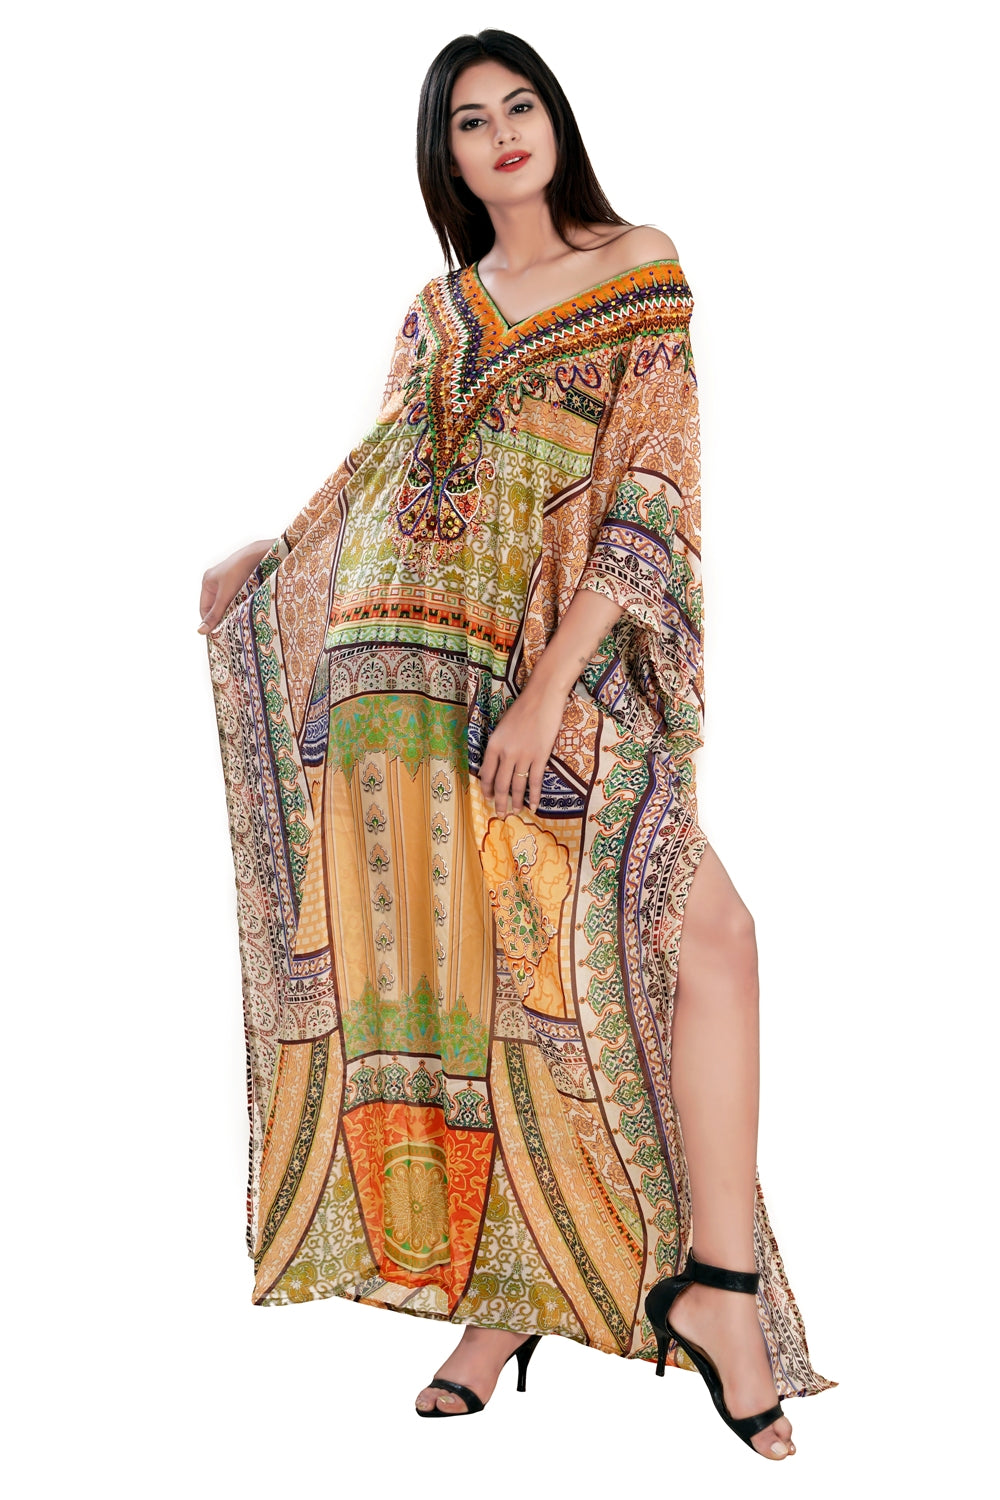 Vintage Gallivant Bohemian Print Maxi Style Silk Kaftan to warm breeze and summer sunsets vacation beach outfits - Silk kaftan